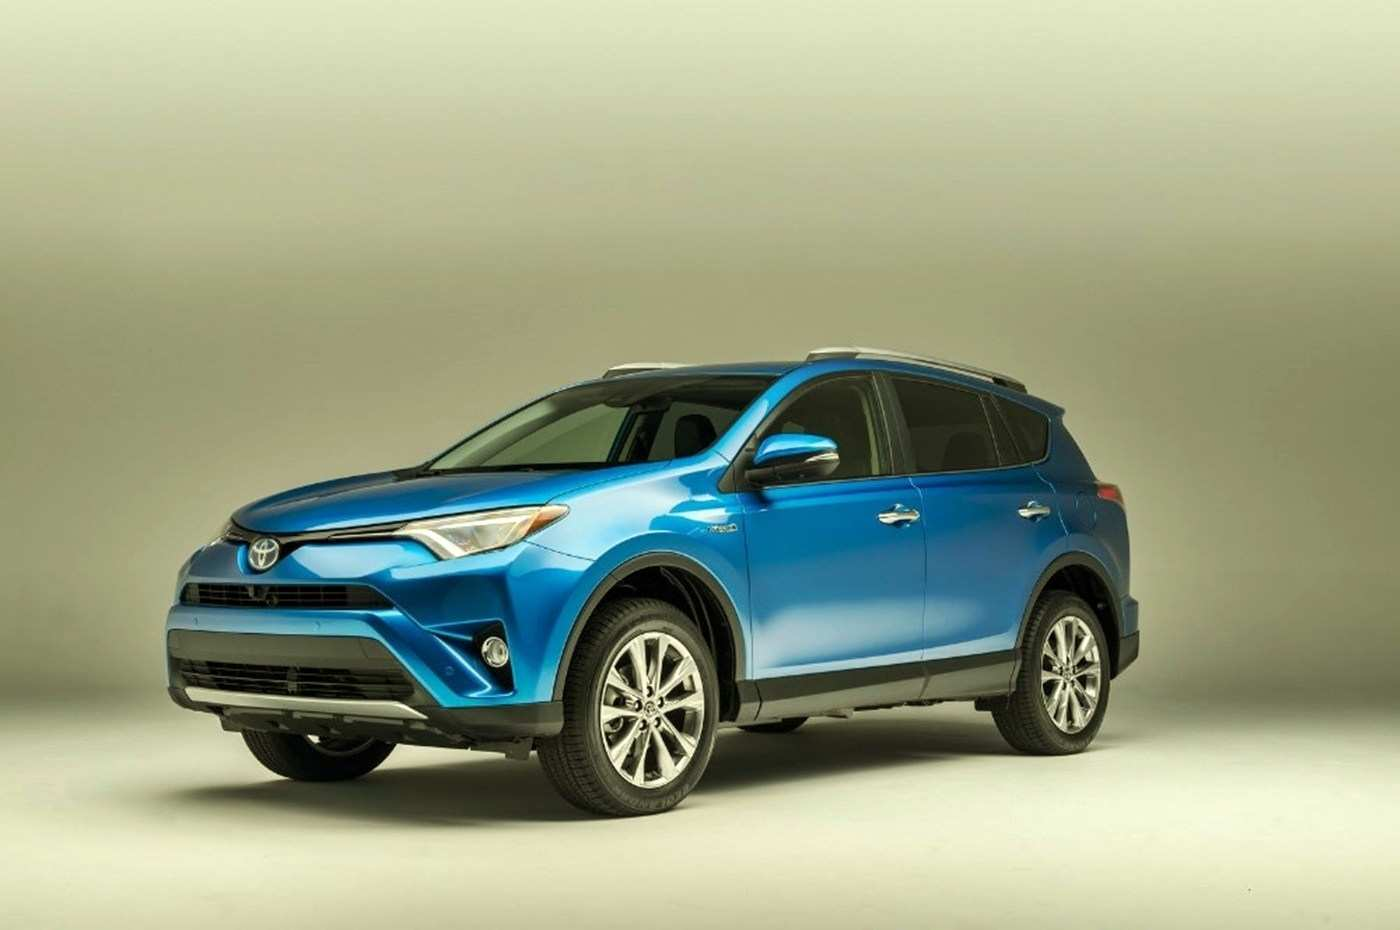 95 Best Review 2020 Toyota Rav4 Exterior New Concept with 2020 Toyota Rav4 Exterior